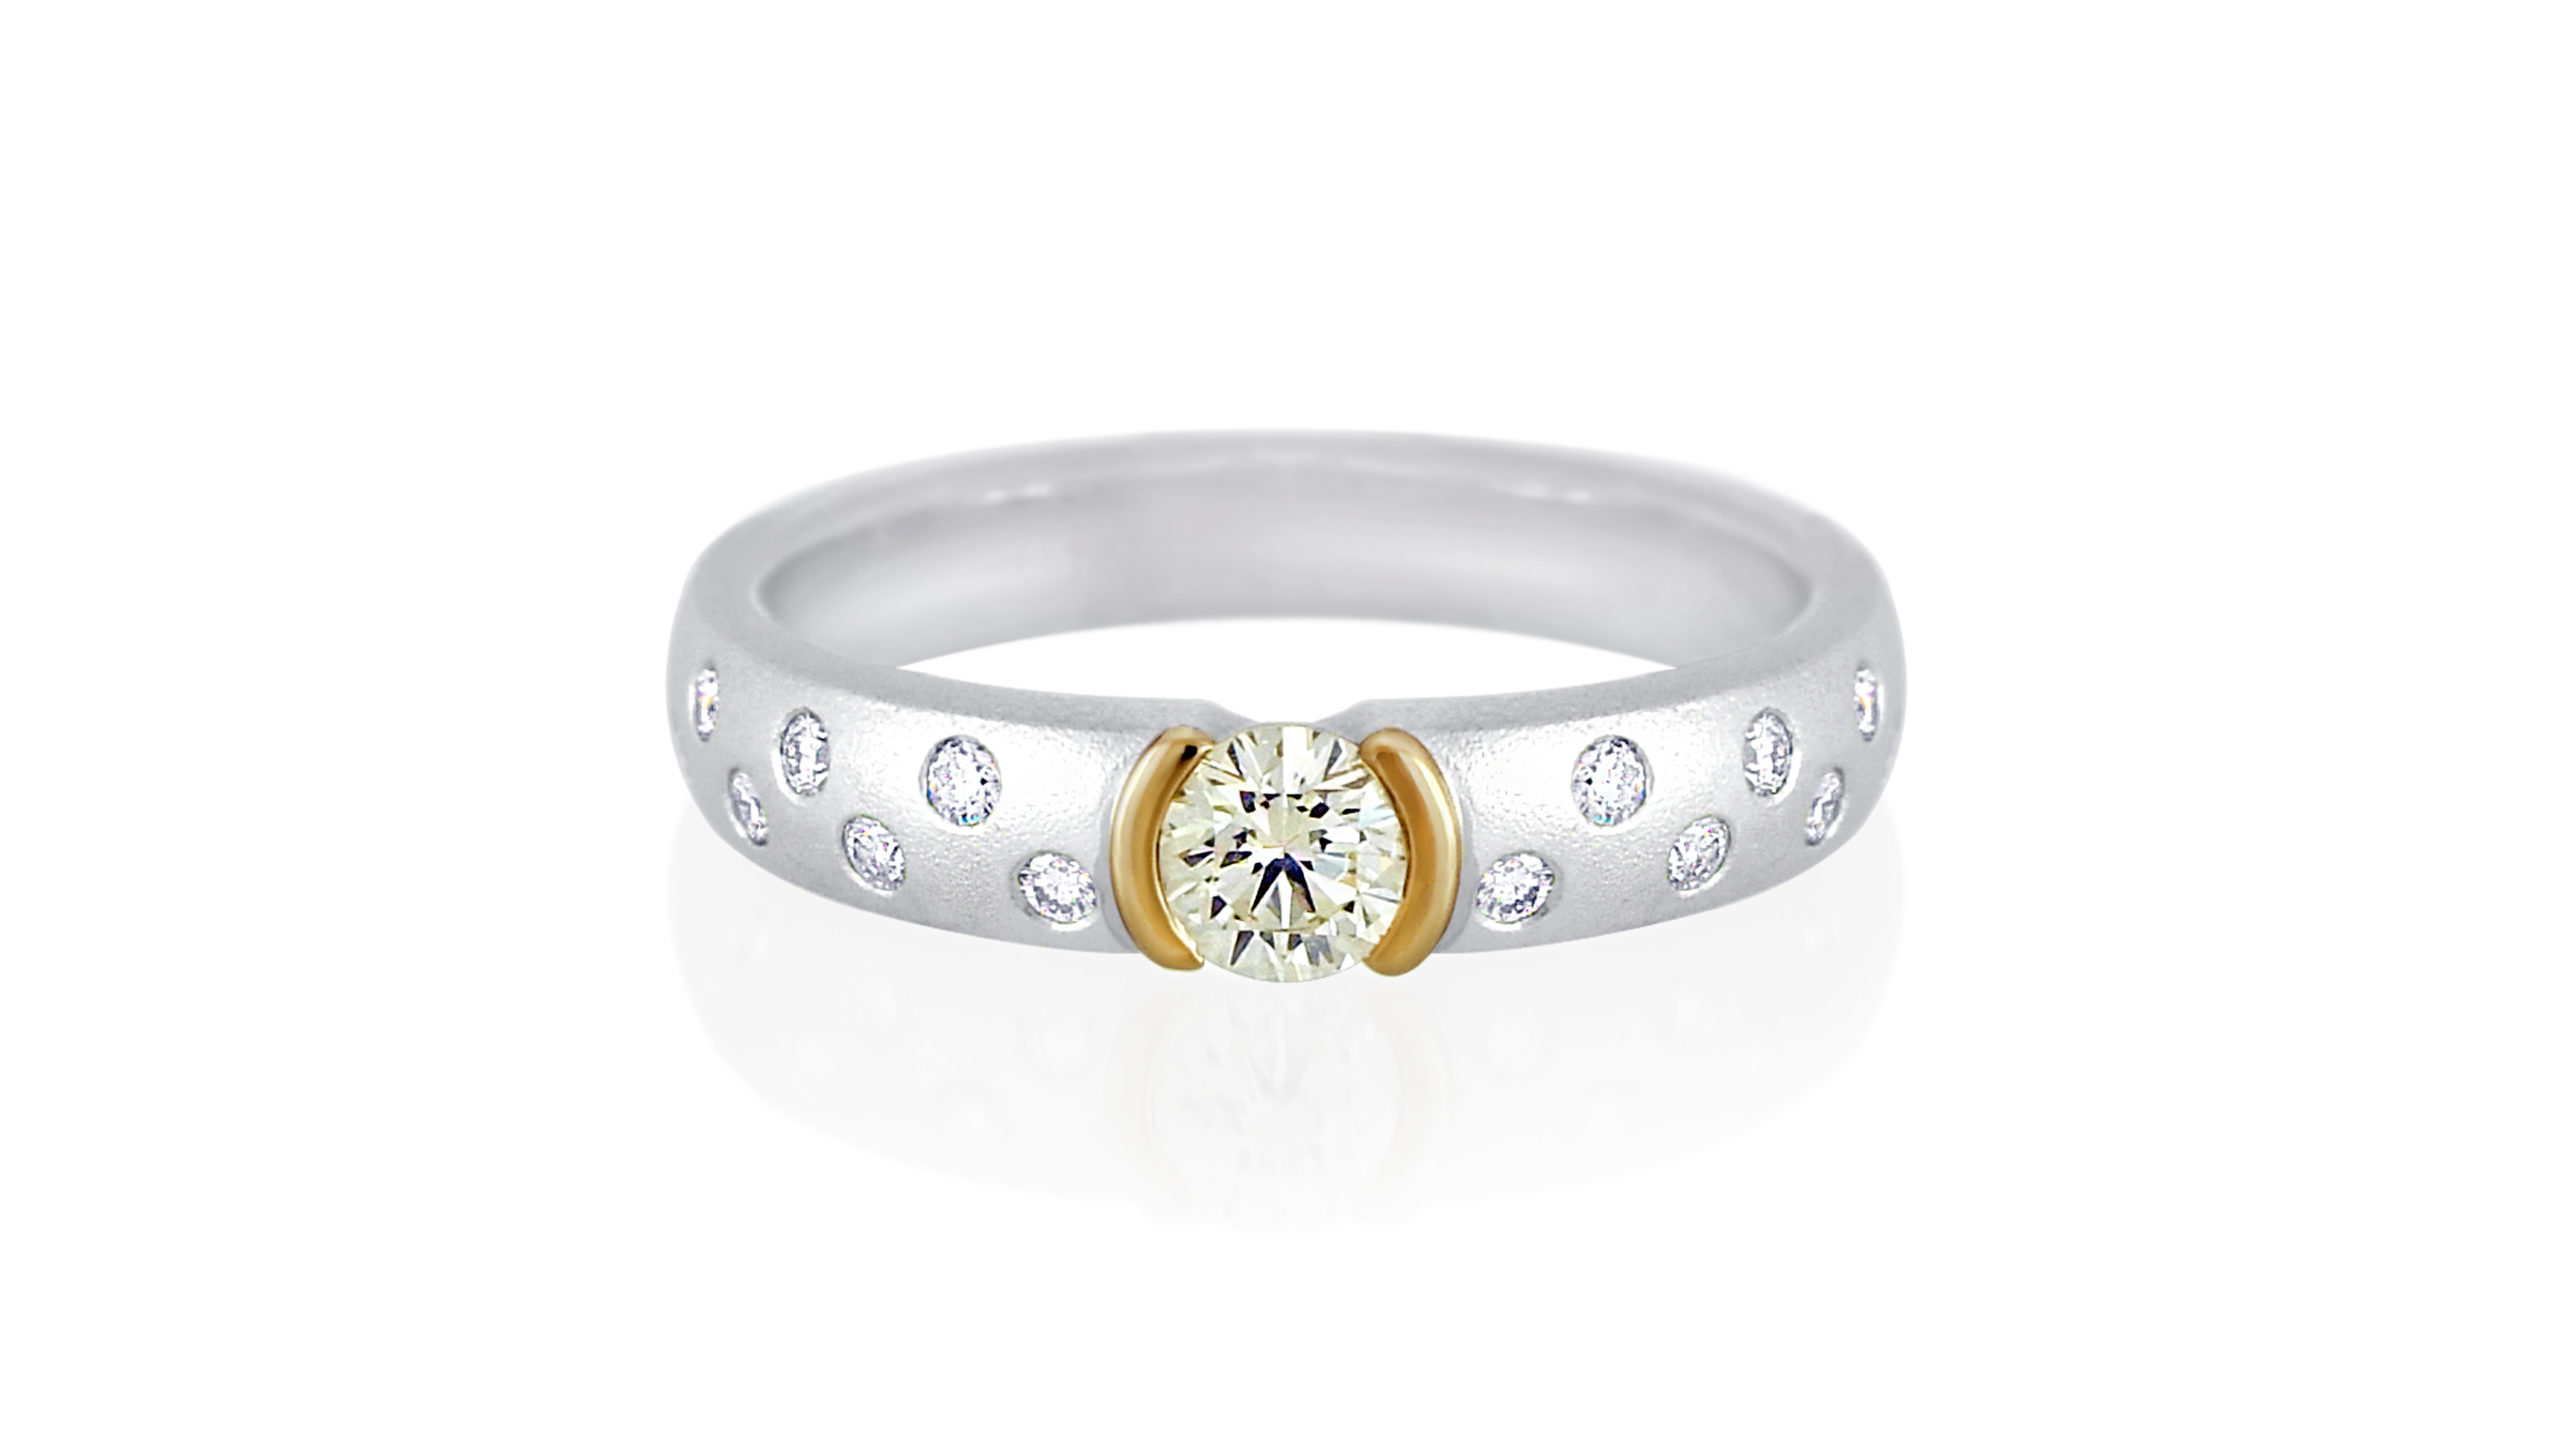 Cape Diamond Galaxy Ring | Handcrafted in 18 carat white and yellow gold